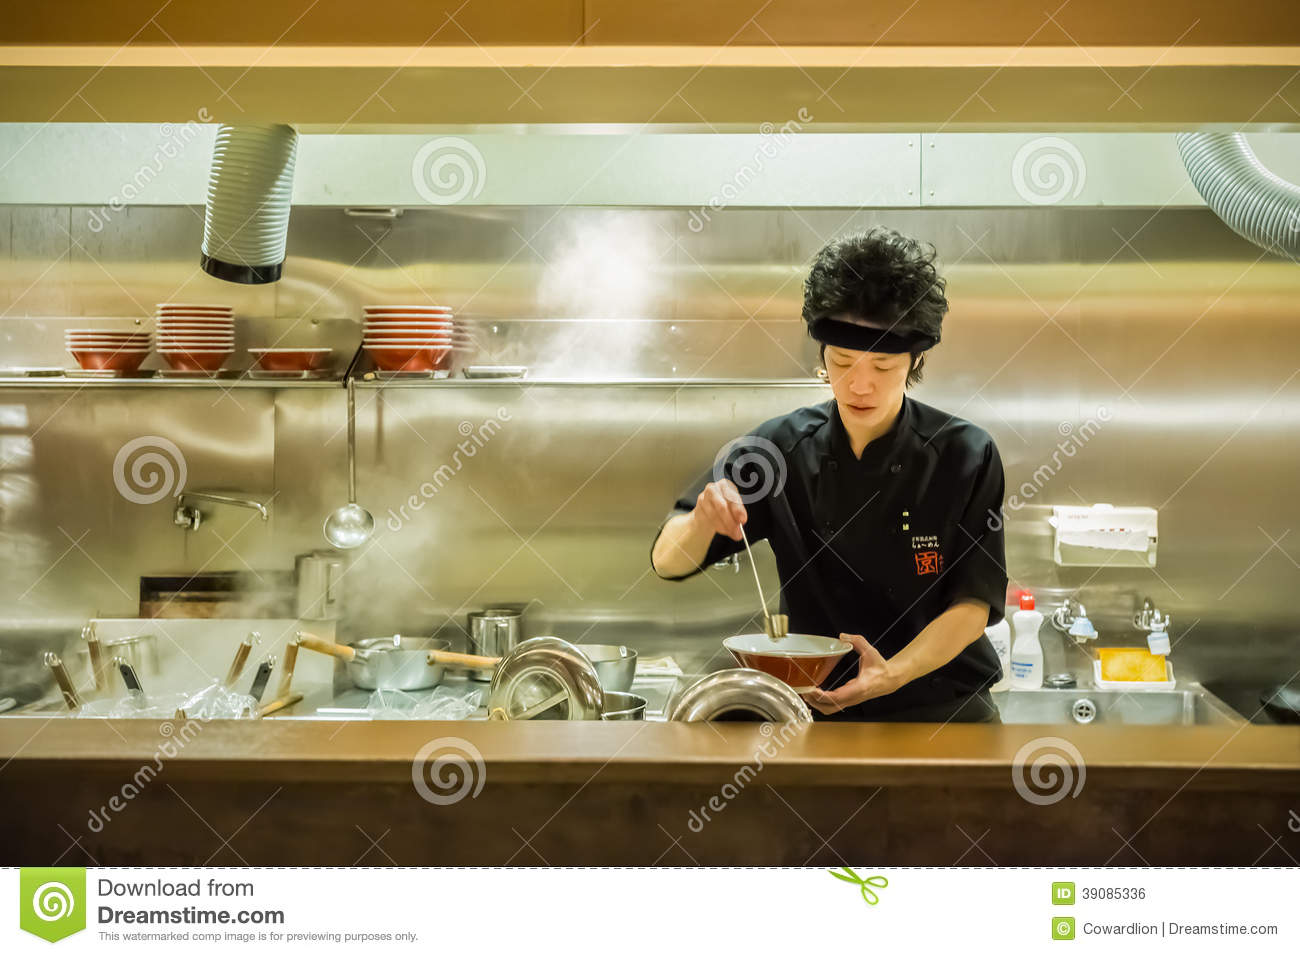 Japanese Ramen Chef Editorial Photo Image Of Cooking 39085336